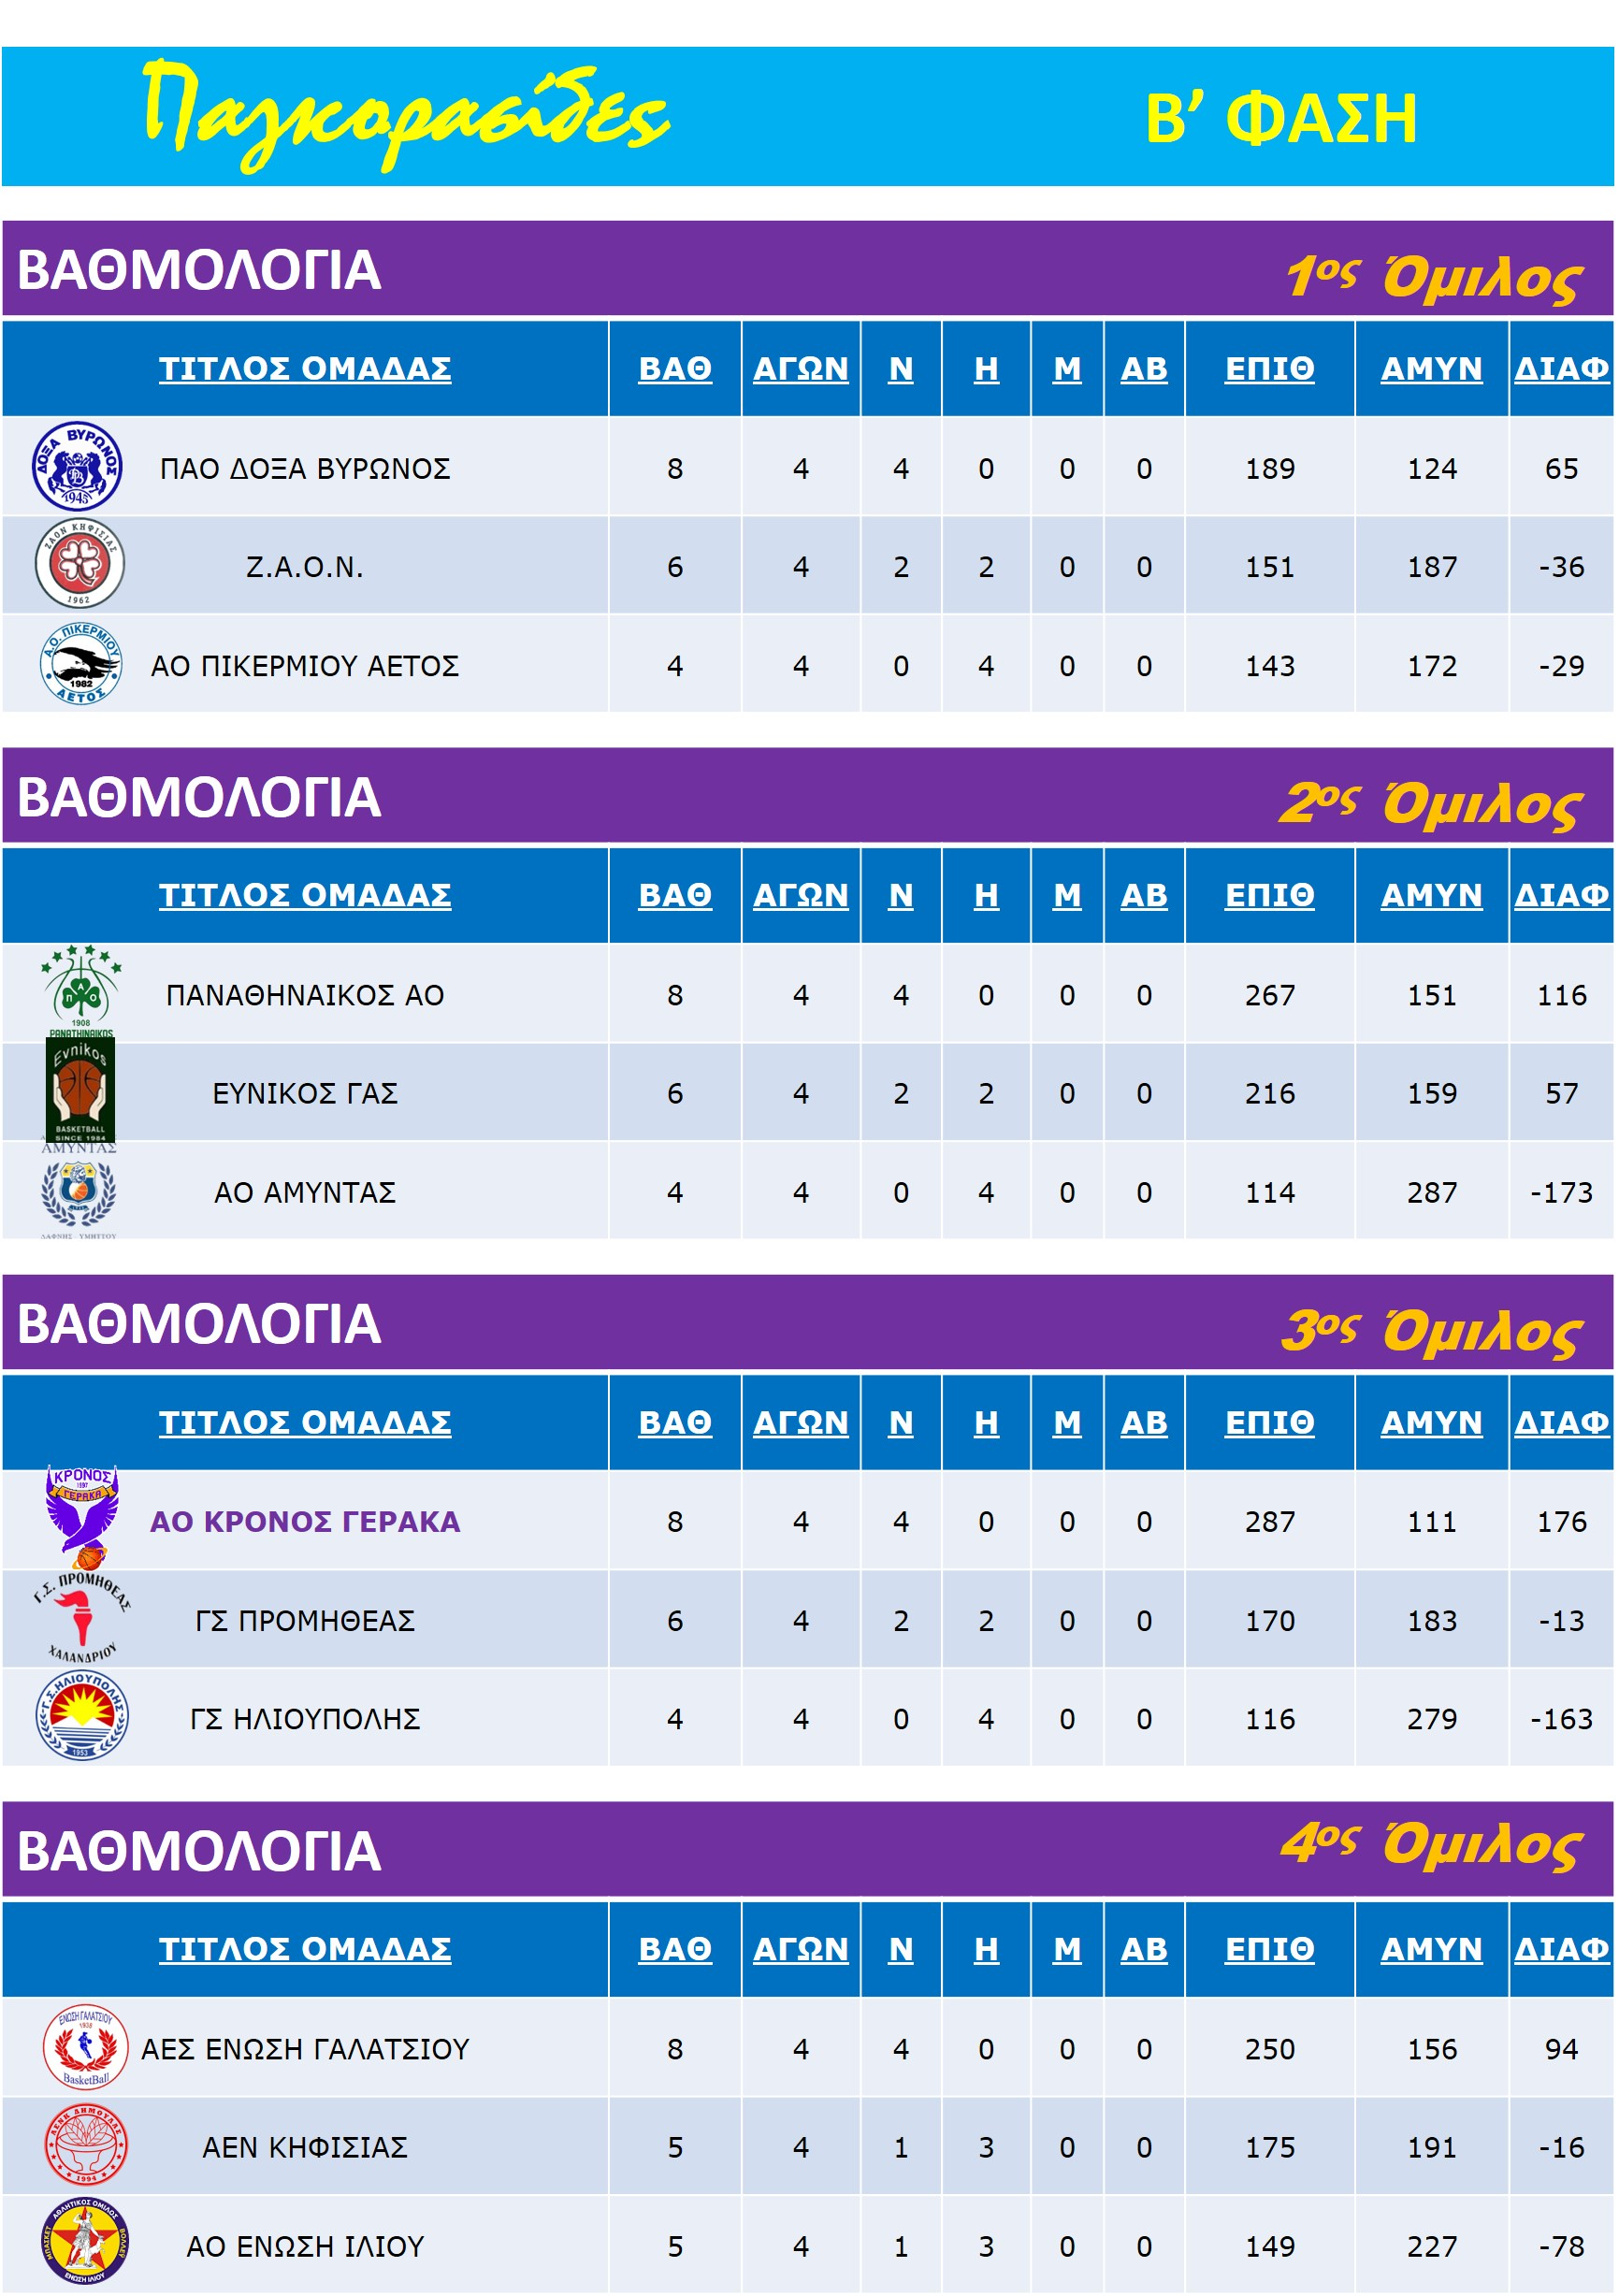 Pagkorasides_2nd_Stage_Rank_All-Groups_6